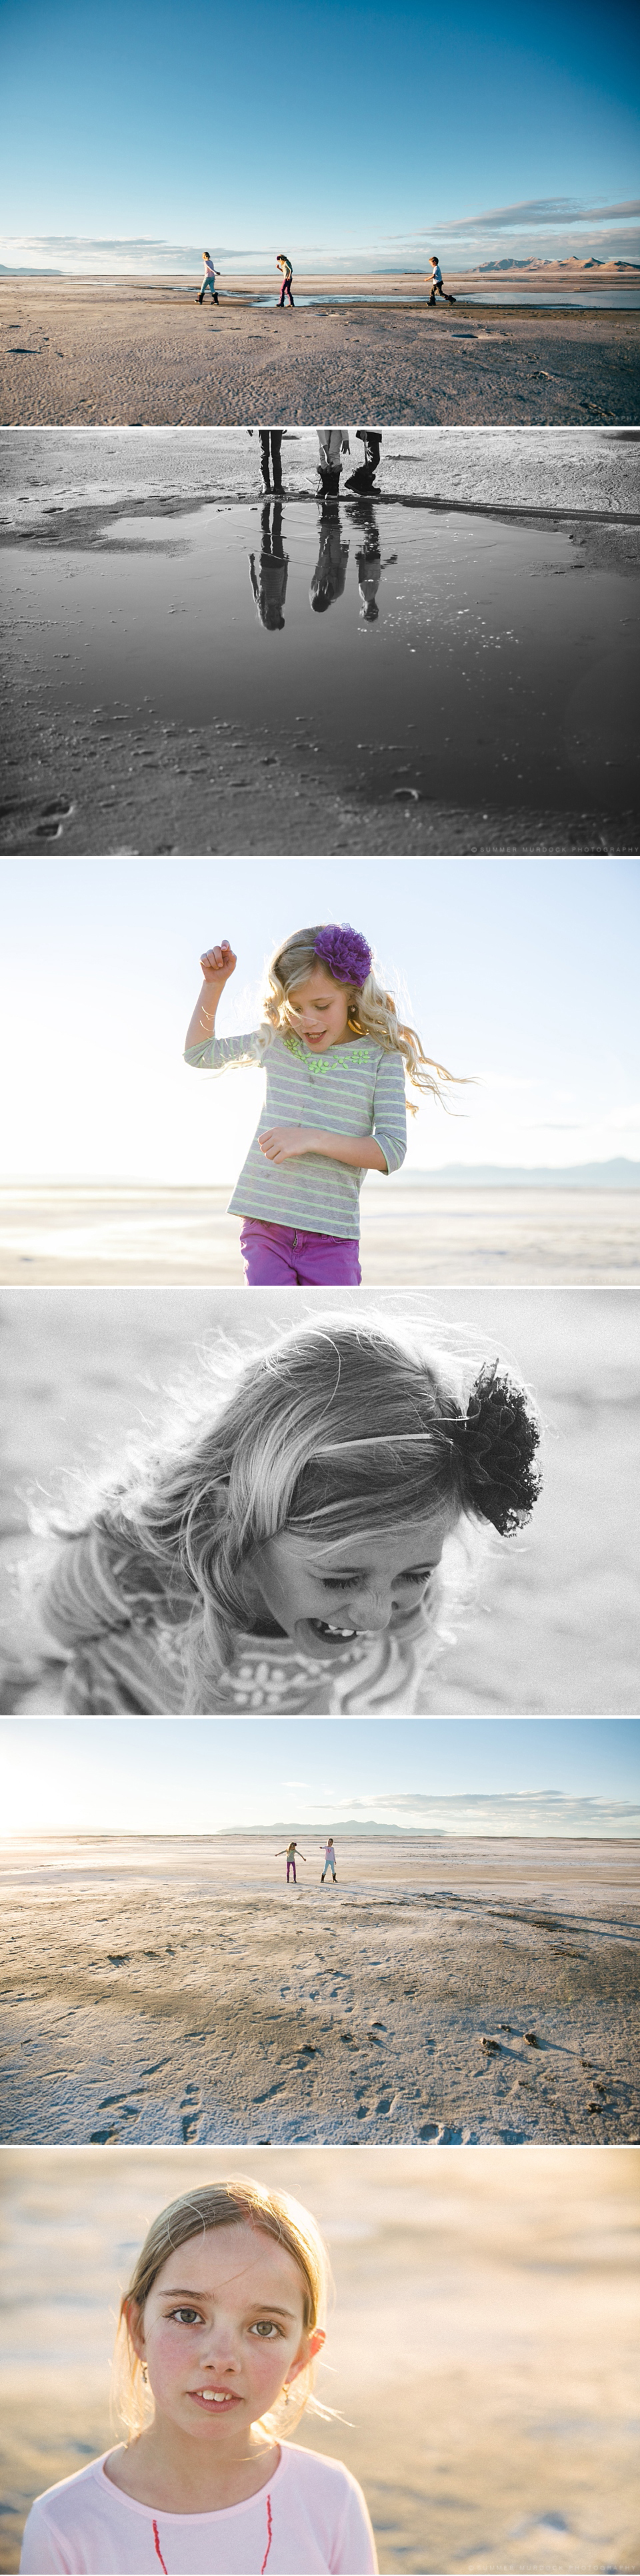 Summer Murdock Photography| SLC, UT Area Photographer